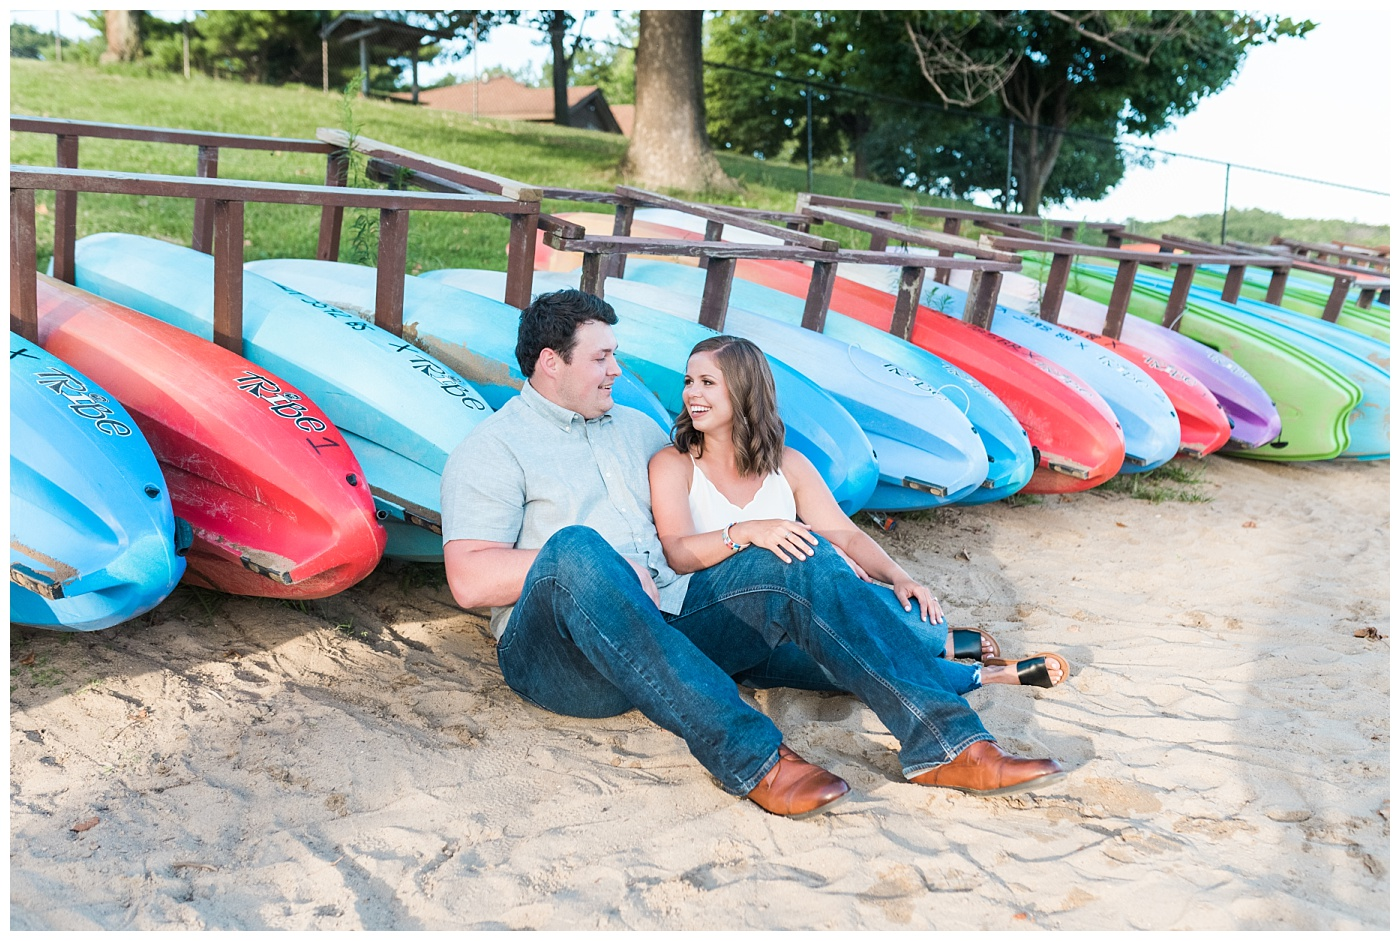 Stephanie Marie Photography Lake McBride Engagement Session Dubuque Iowa City Wedding Photographer Morgan Lucas_0010-1.jpg